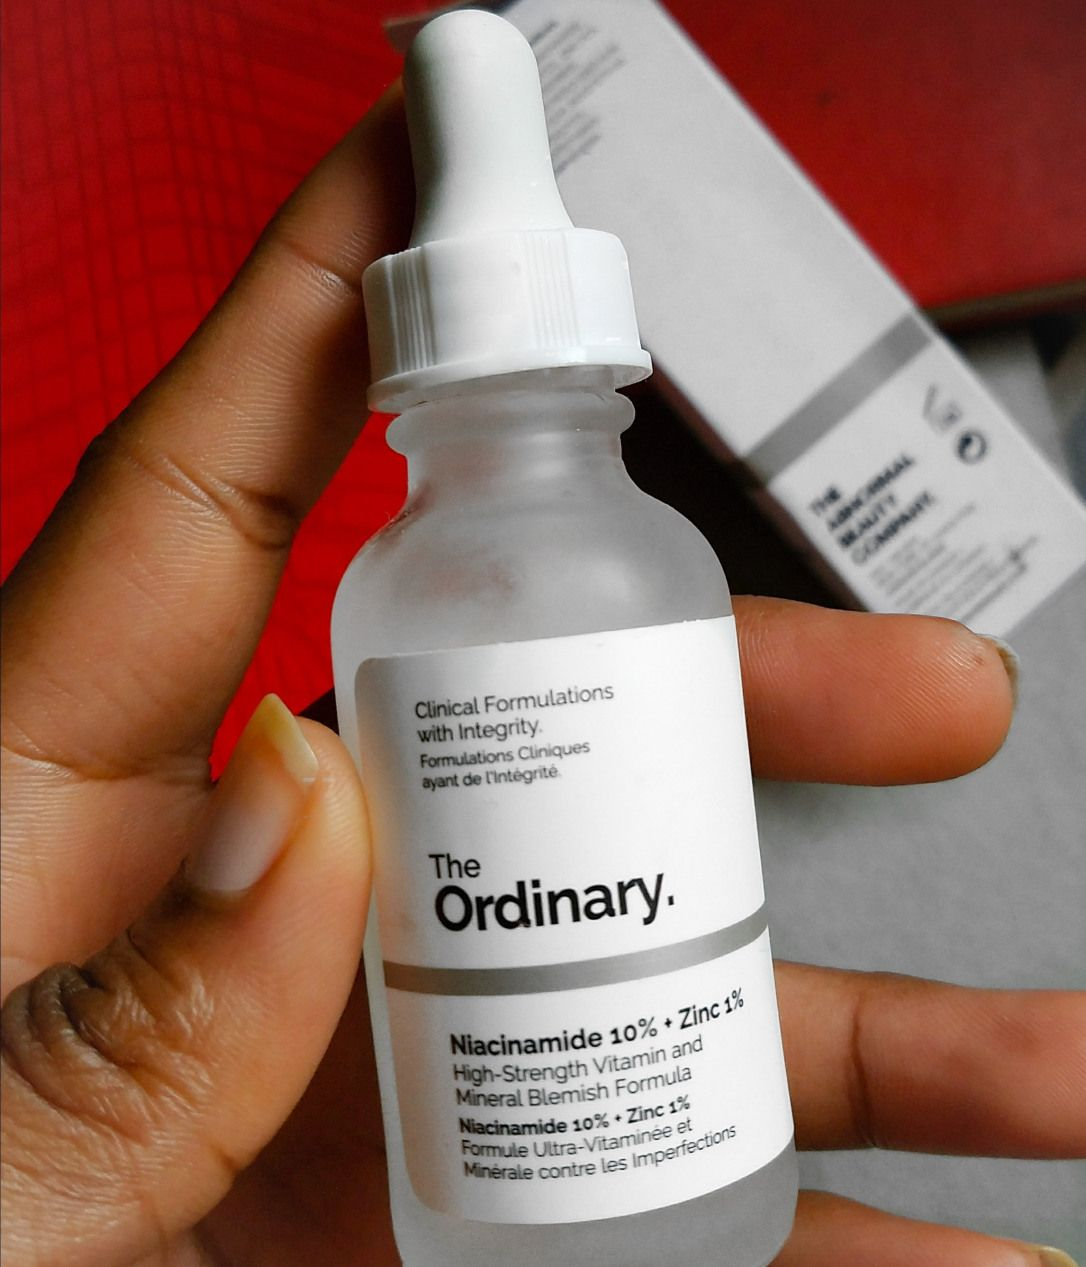 The Ordinary Niacinamide Serum Review Halsadiya Beauty Blog The Ordinary Niacinamide Skincare Facts Skin Care